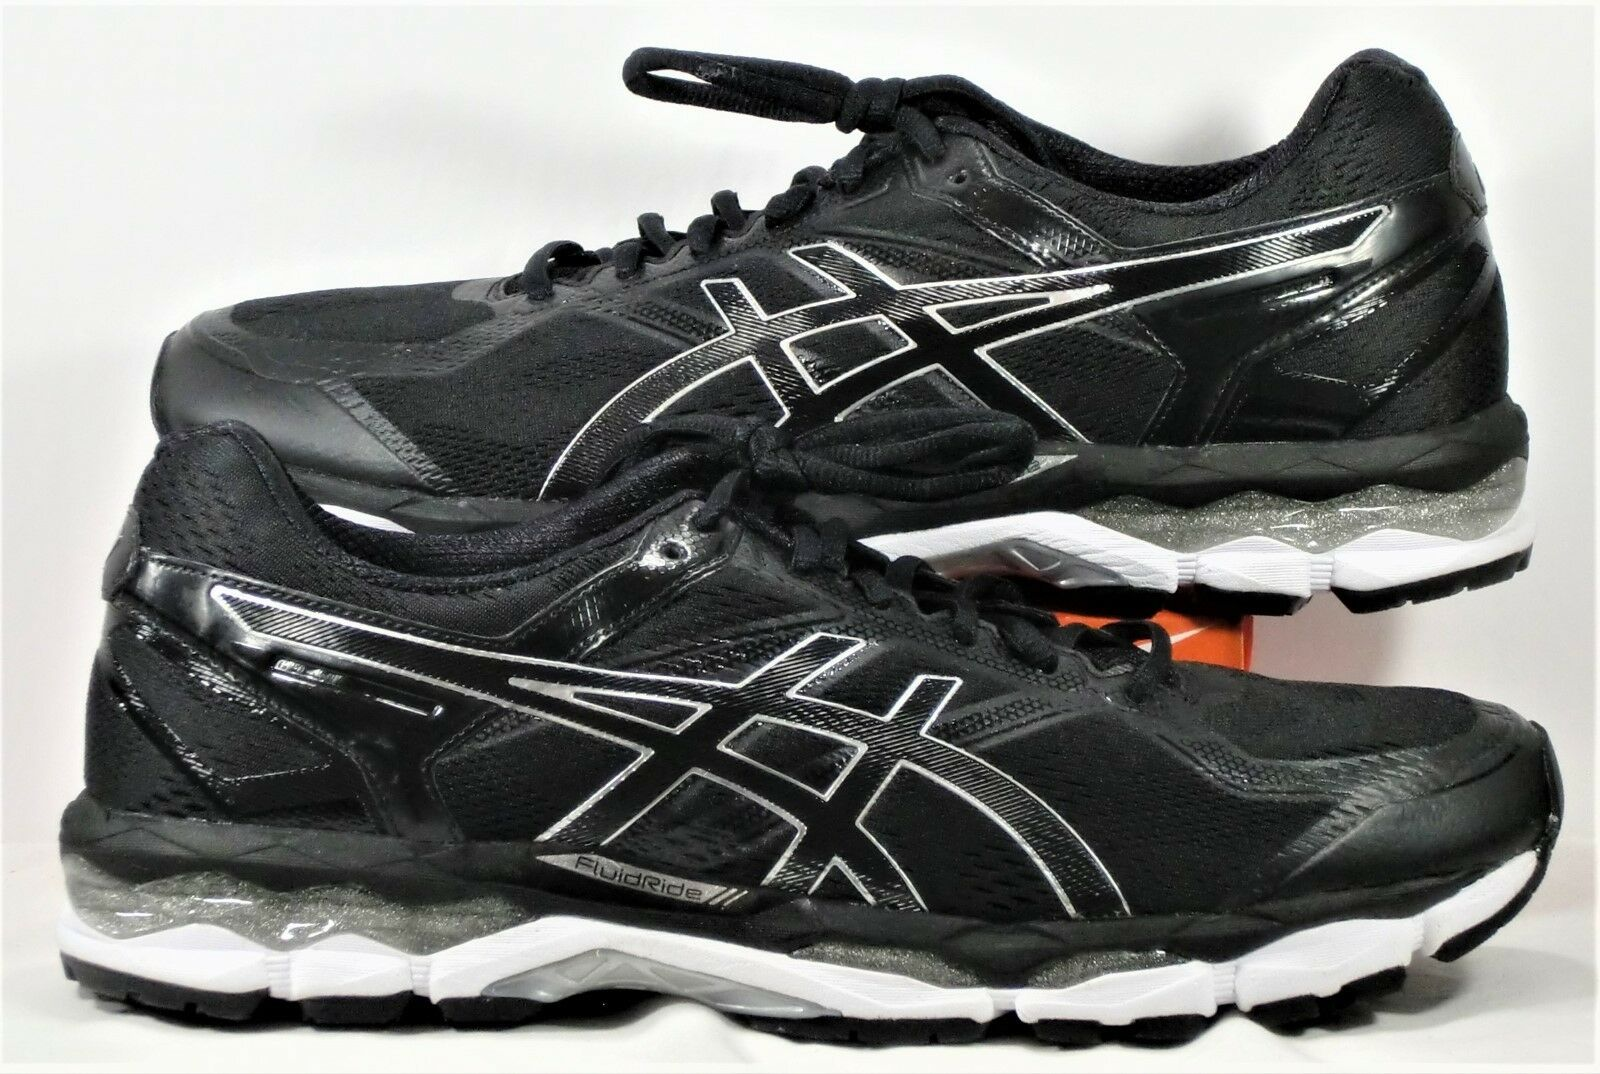 Asics GEL Dynamic Duomax Surveyor 5 Black Onyx Running Shoes Sz 11 NEW T6B4N